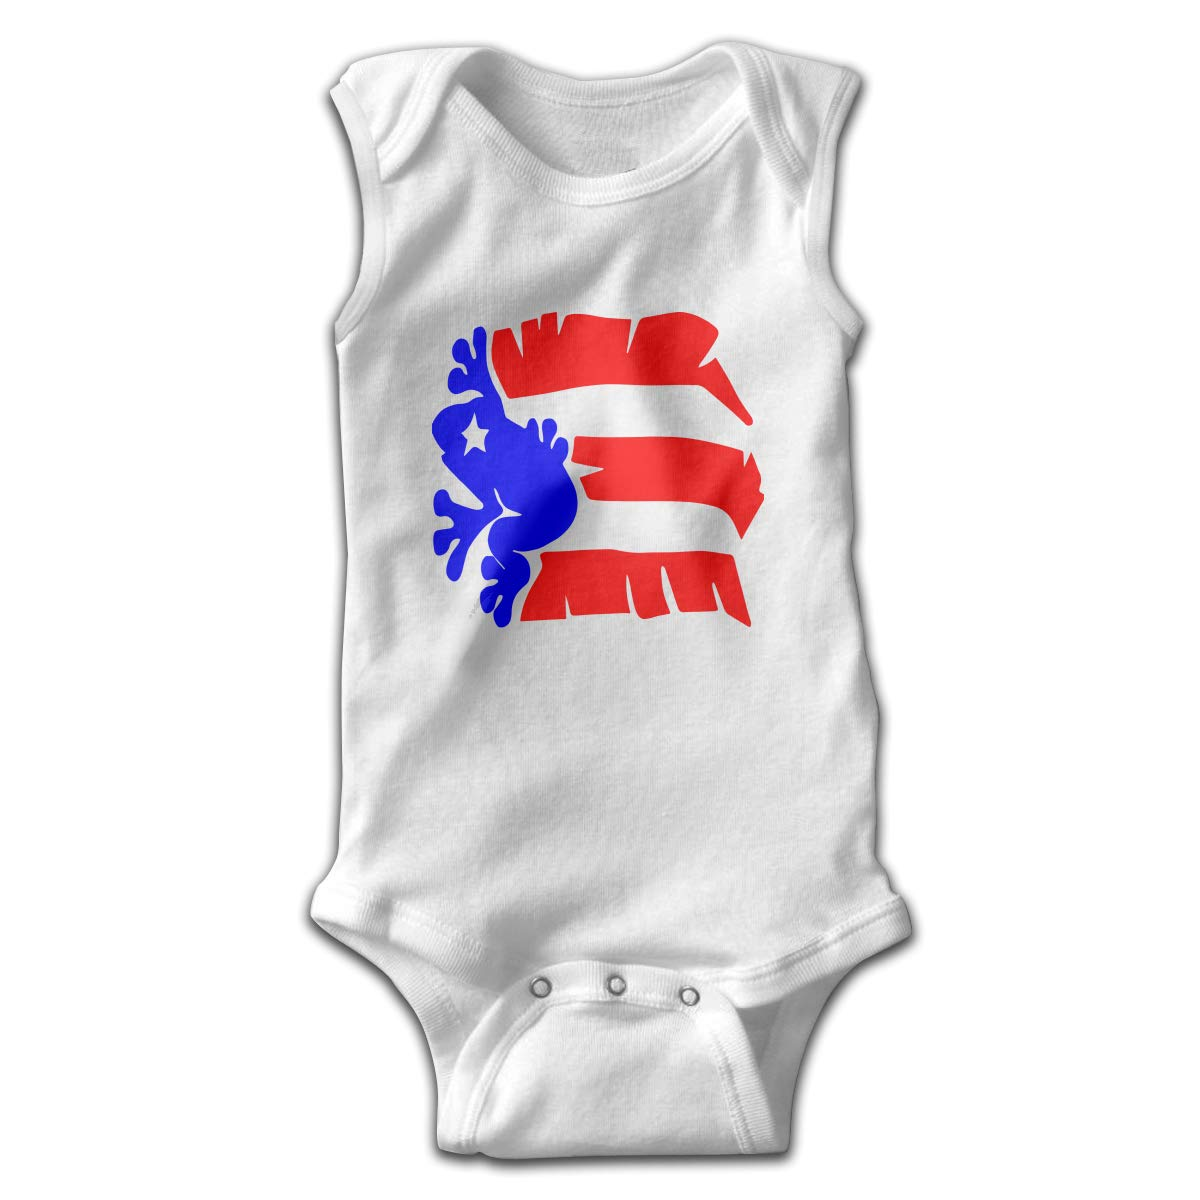 Toddler Puerto Rico Flag Sleeveless Baby Clothes Playsuit Suit 0-24 Months